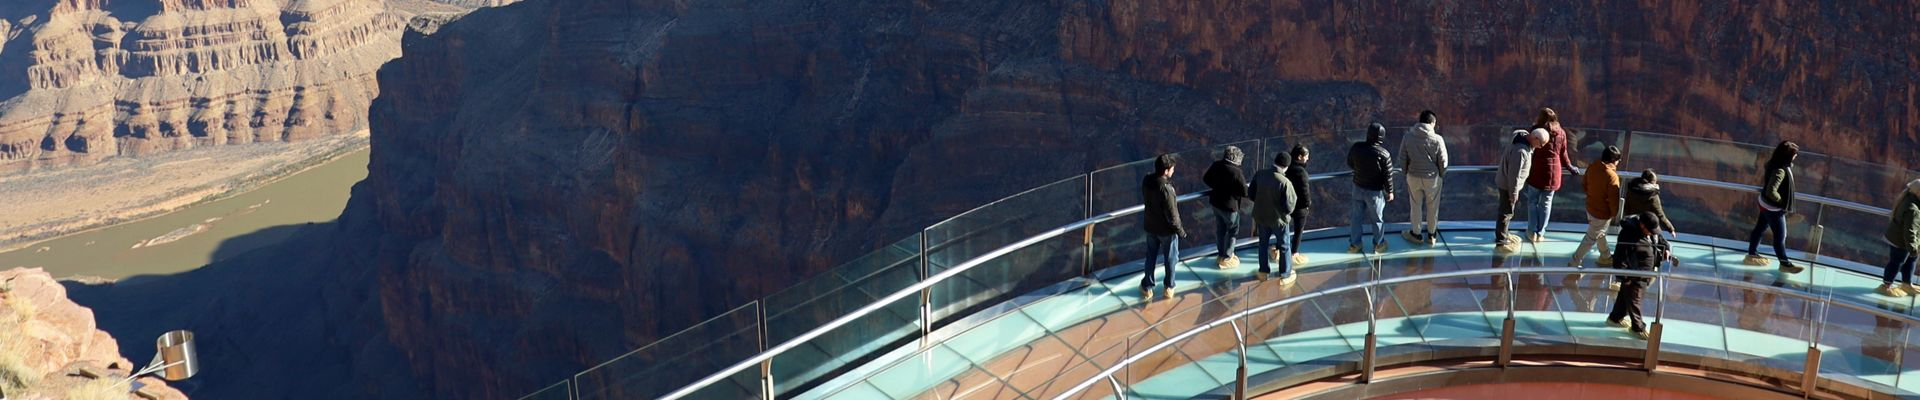 The Skywalk Bridge with the Grand Canyon West in the background.